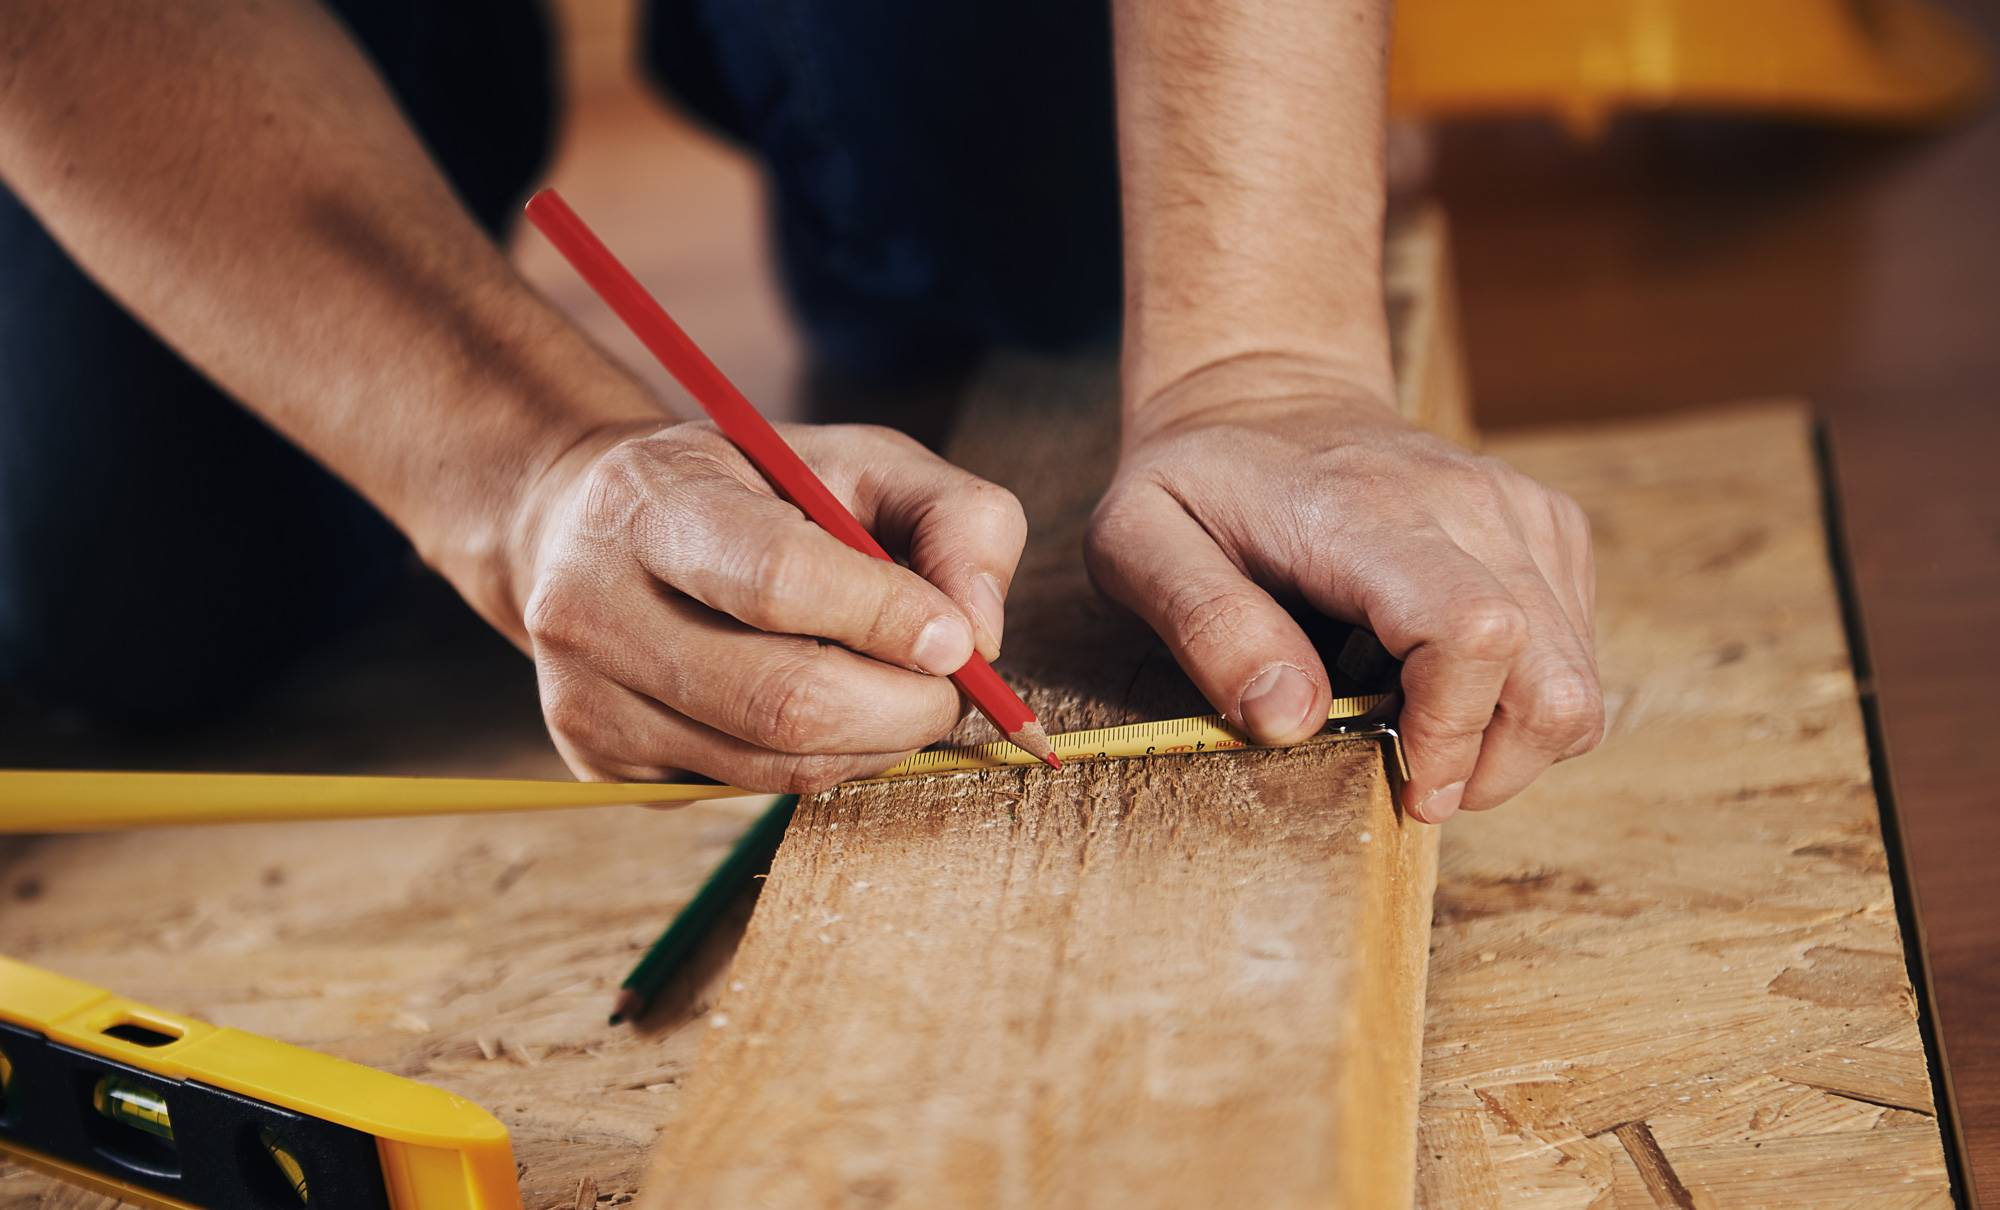 carpenter drawing out markings on wood